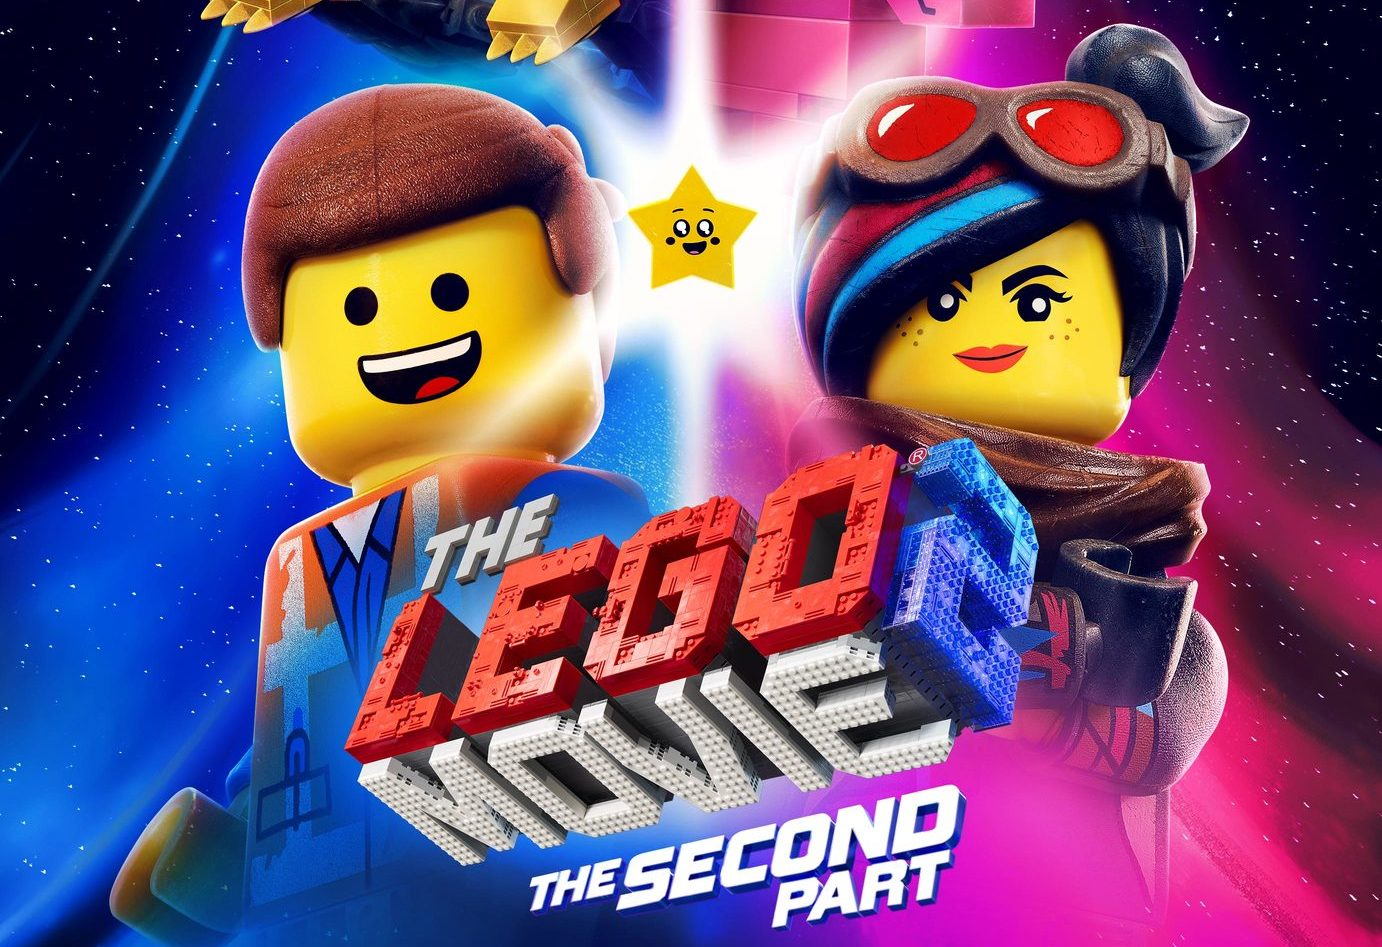 Lego Is Giving Away Tickets To The Lego Movie 2